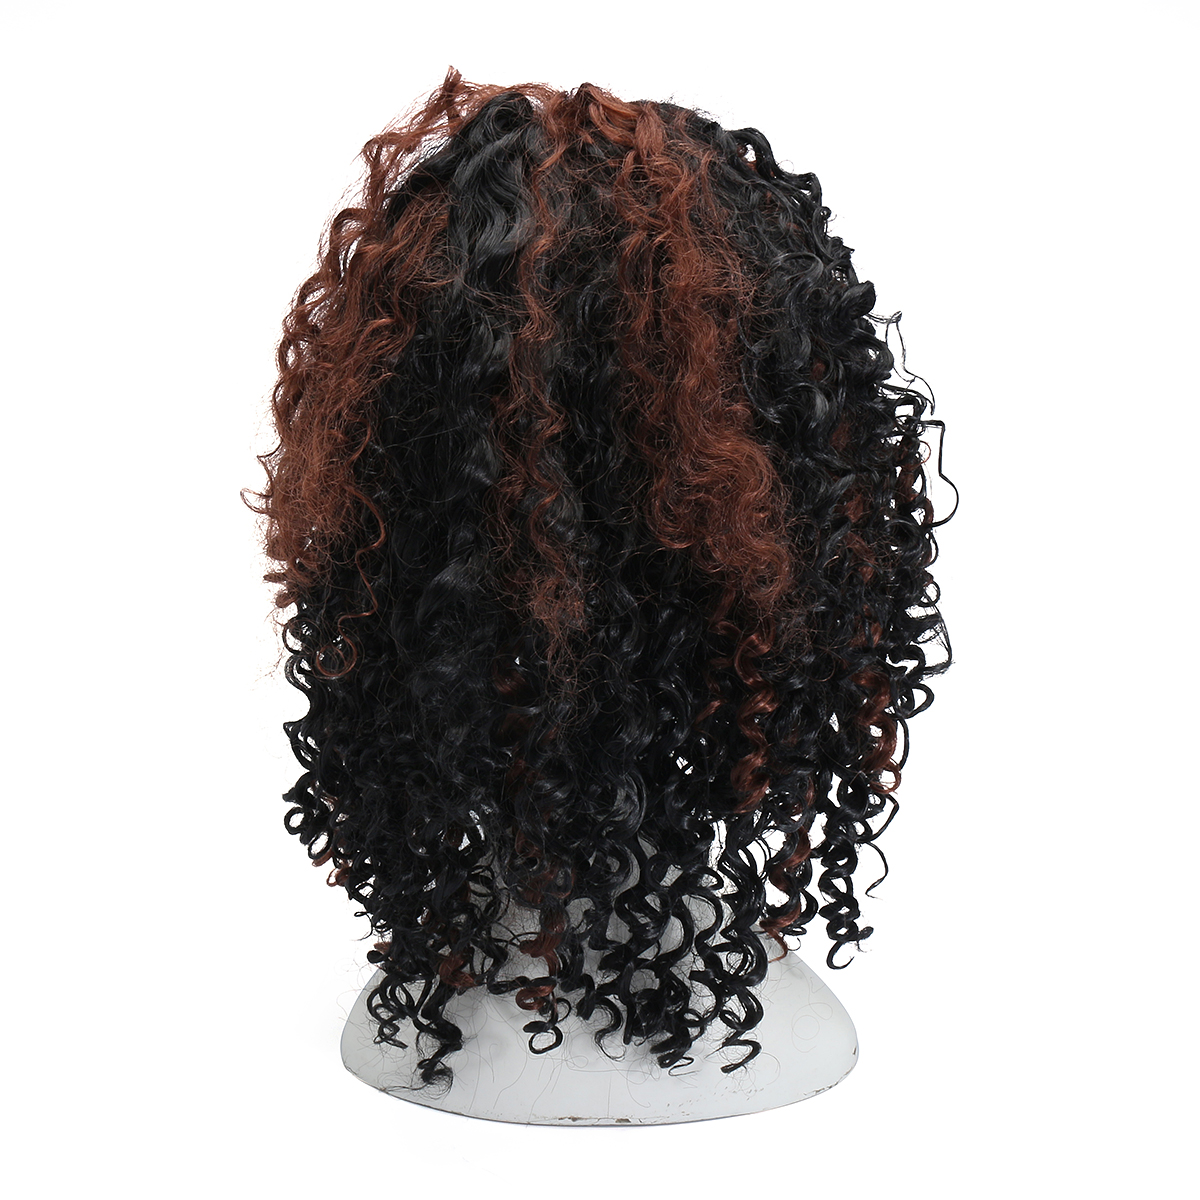 Brazilian Black Brown Hair Deep Wavy Curly Lace Front Full Wig